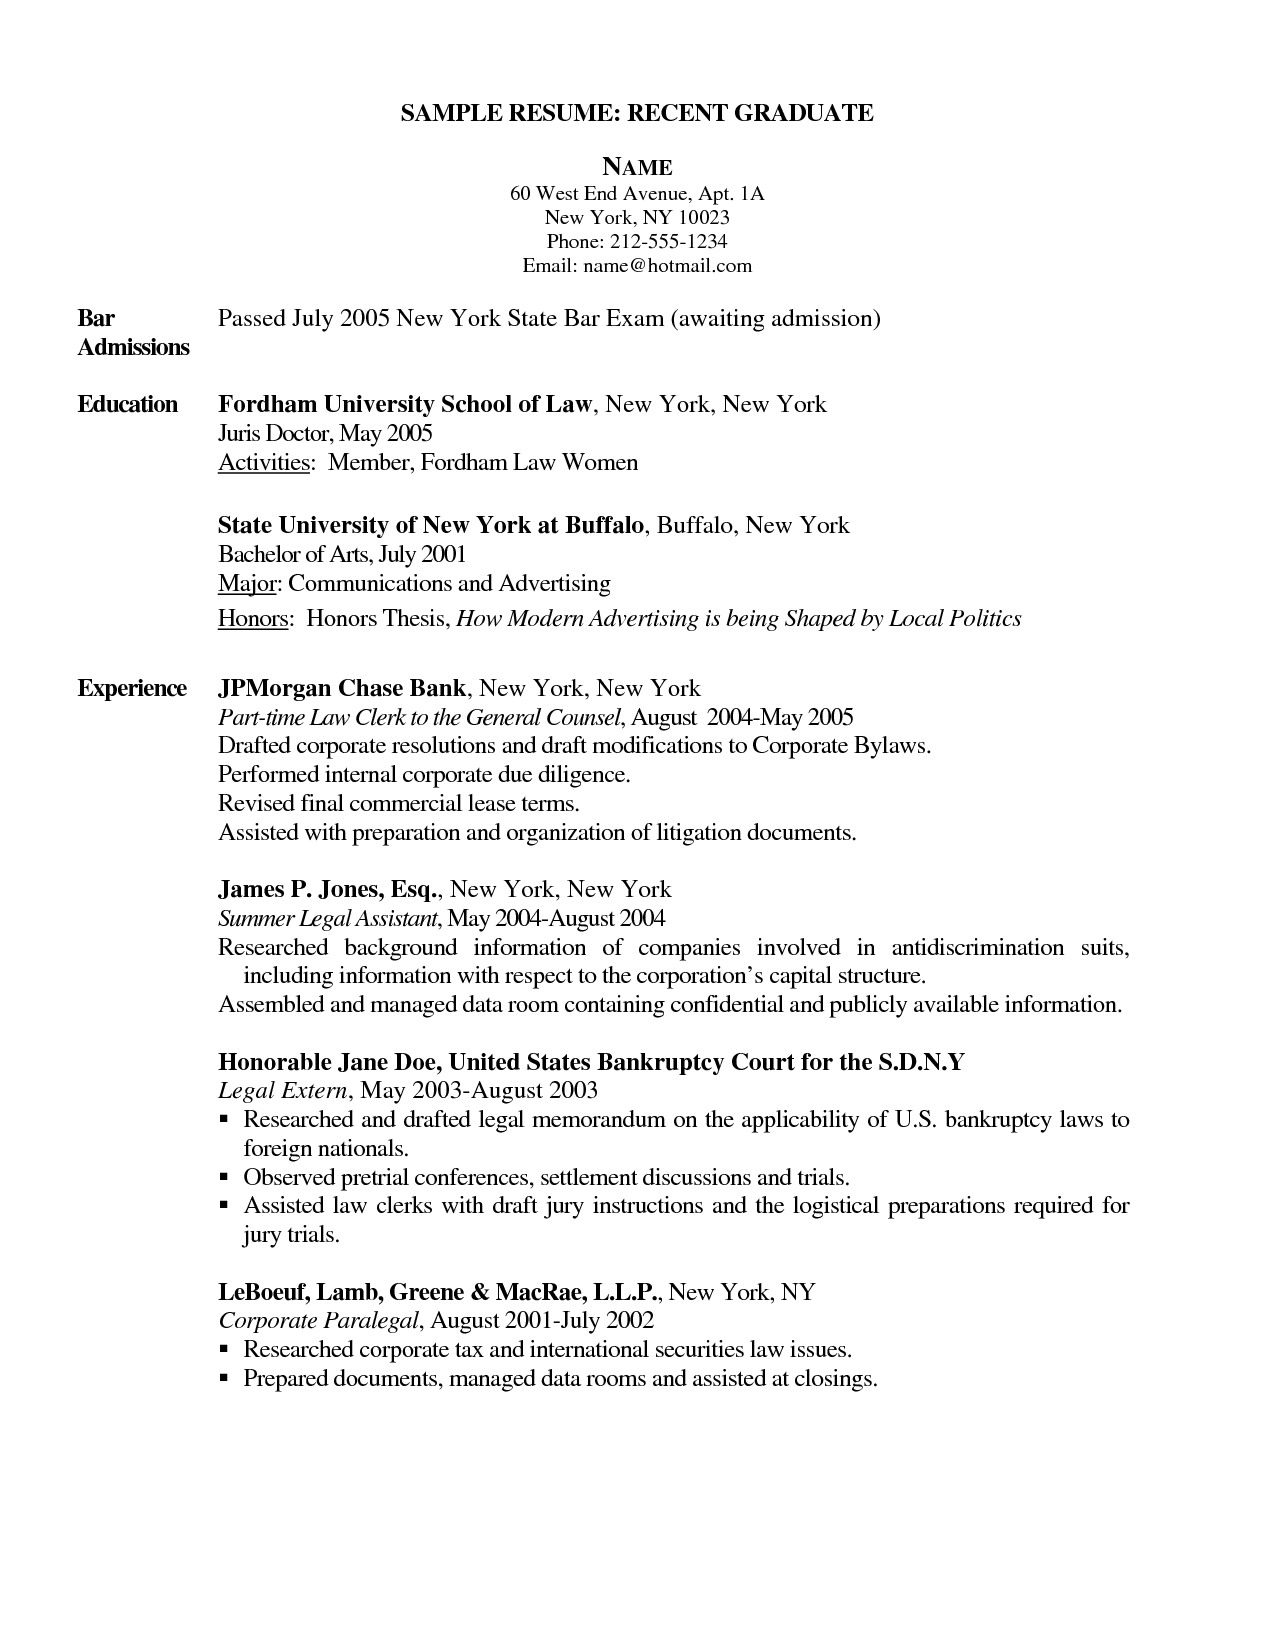 New Grad Nurse Resume Registered Cover Letter Sample Philippines  Resume Recent Graduate